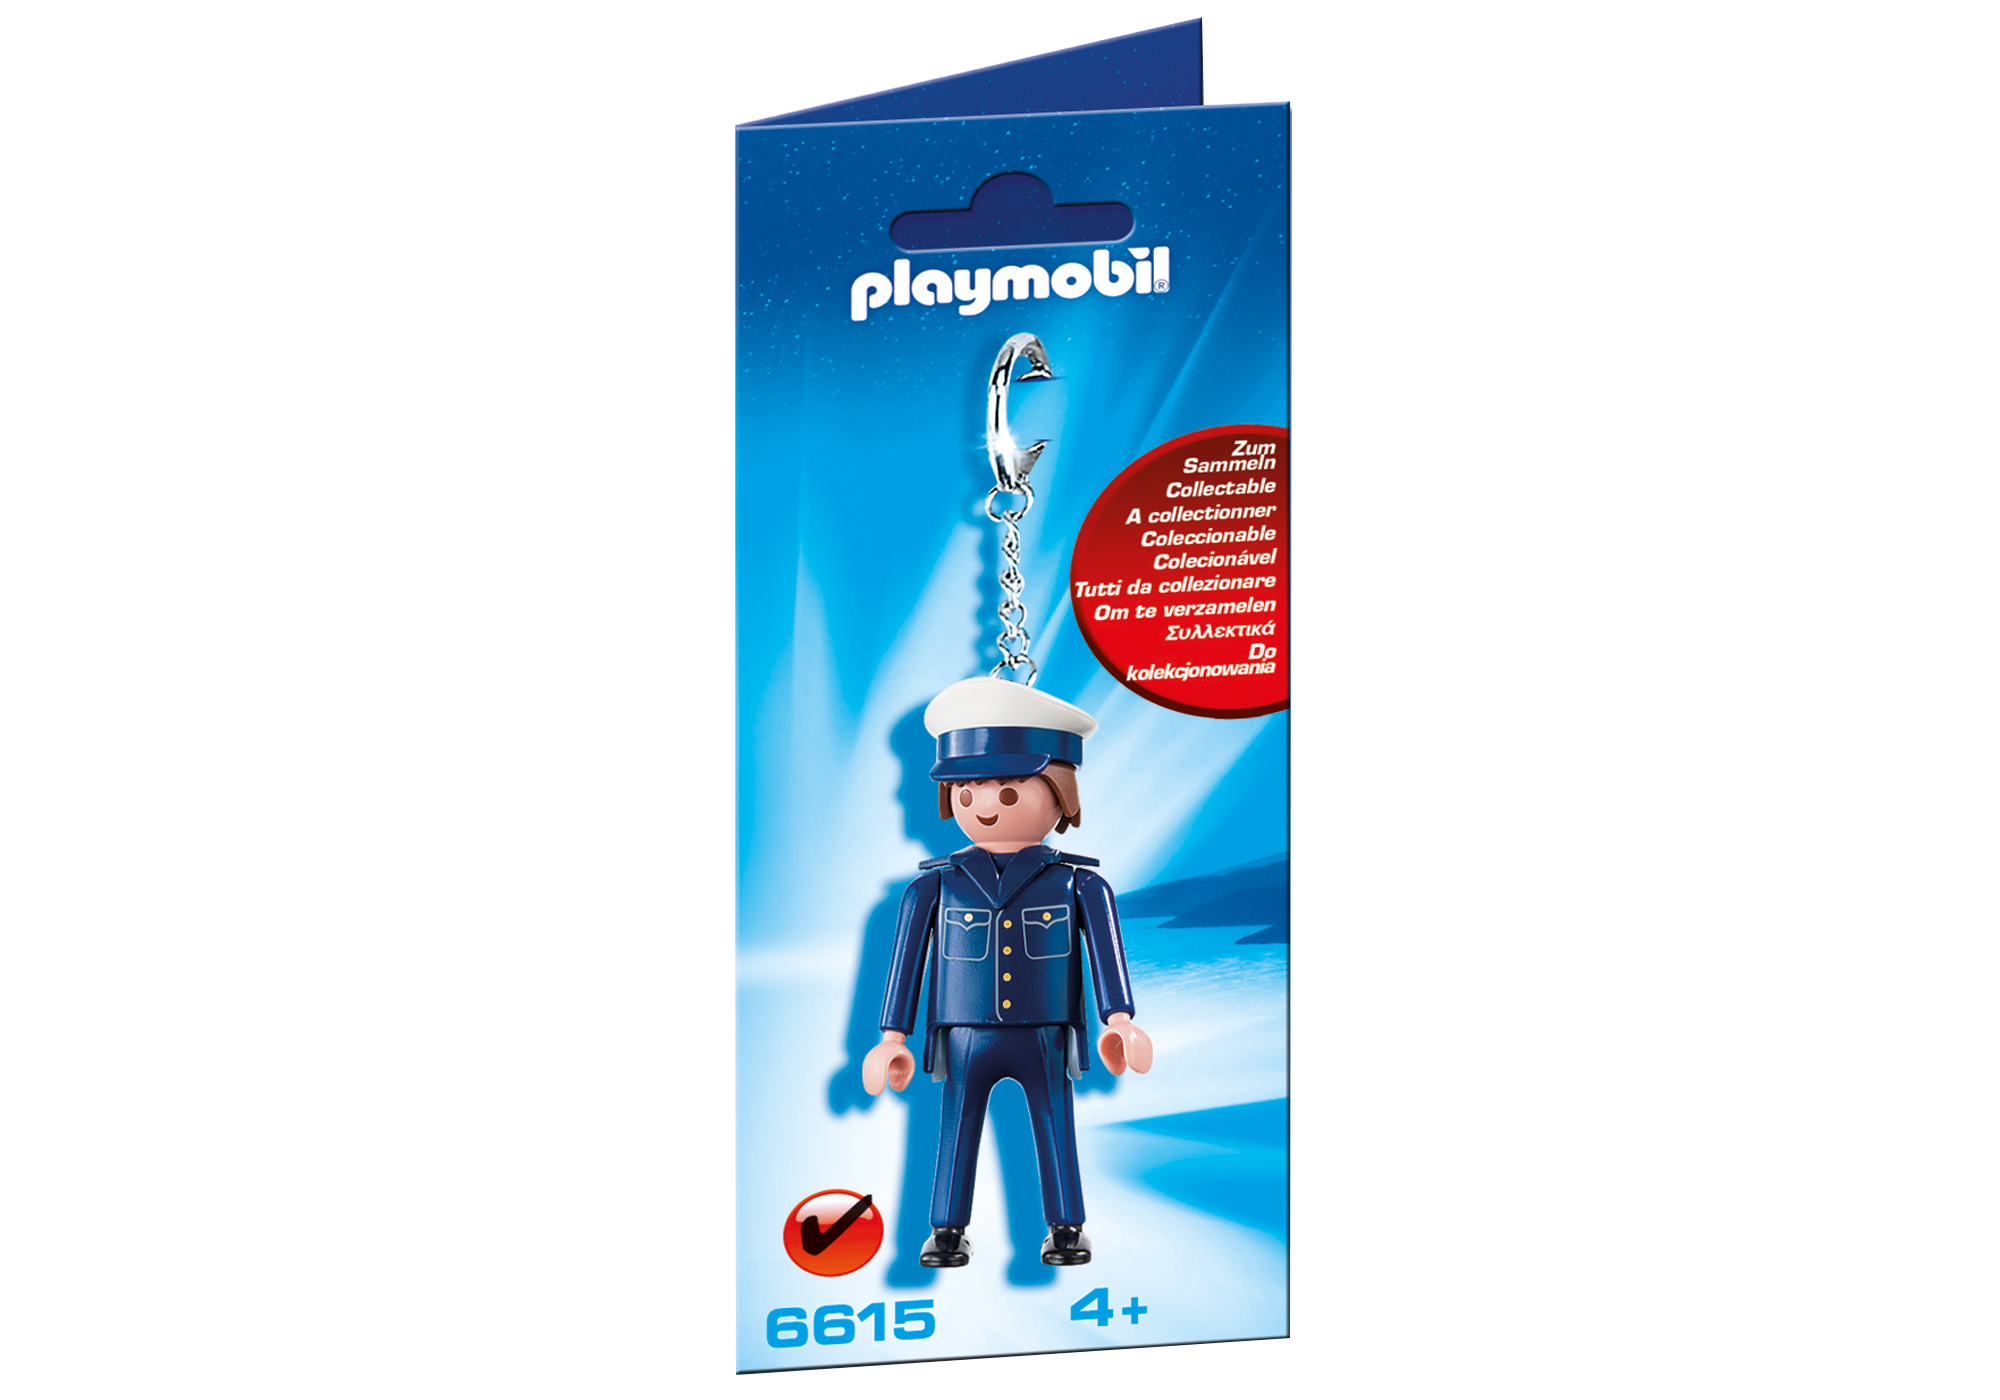 http://media.playmobil.com/i/playmobil/6615_product_box_front